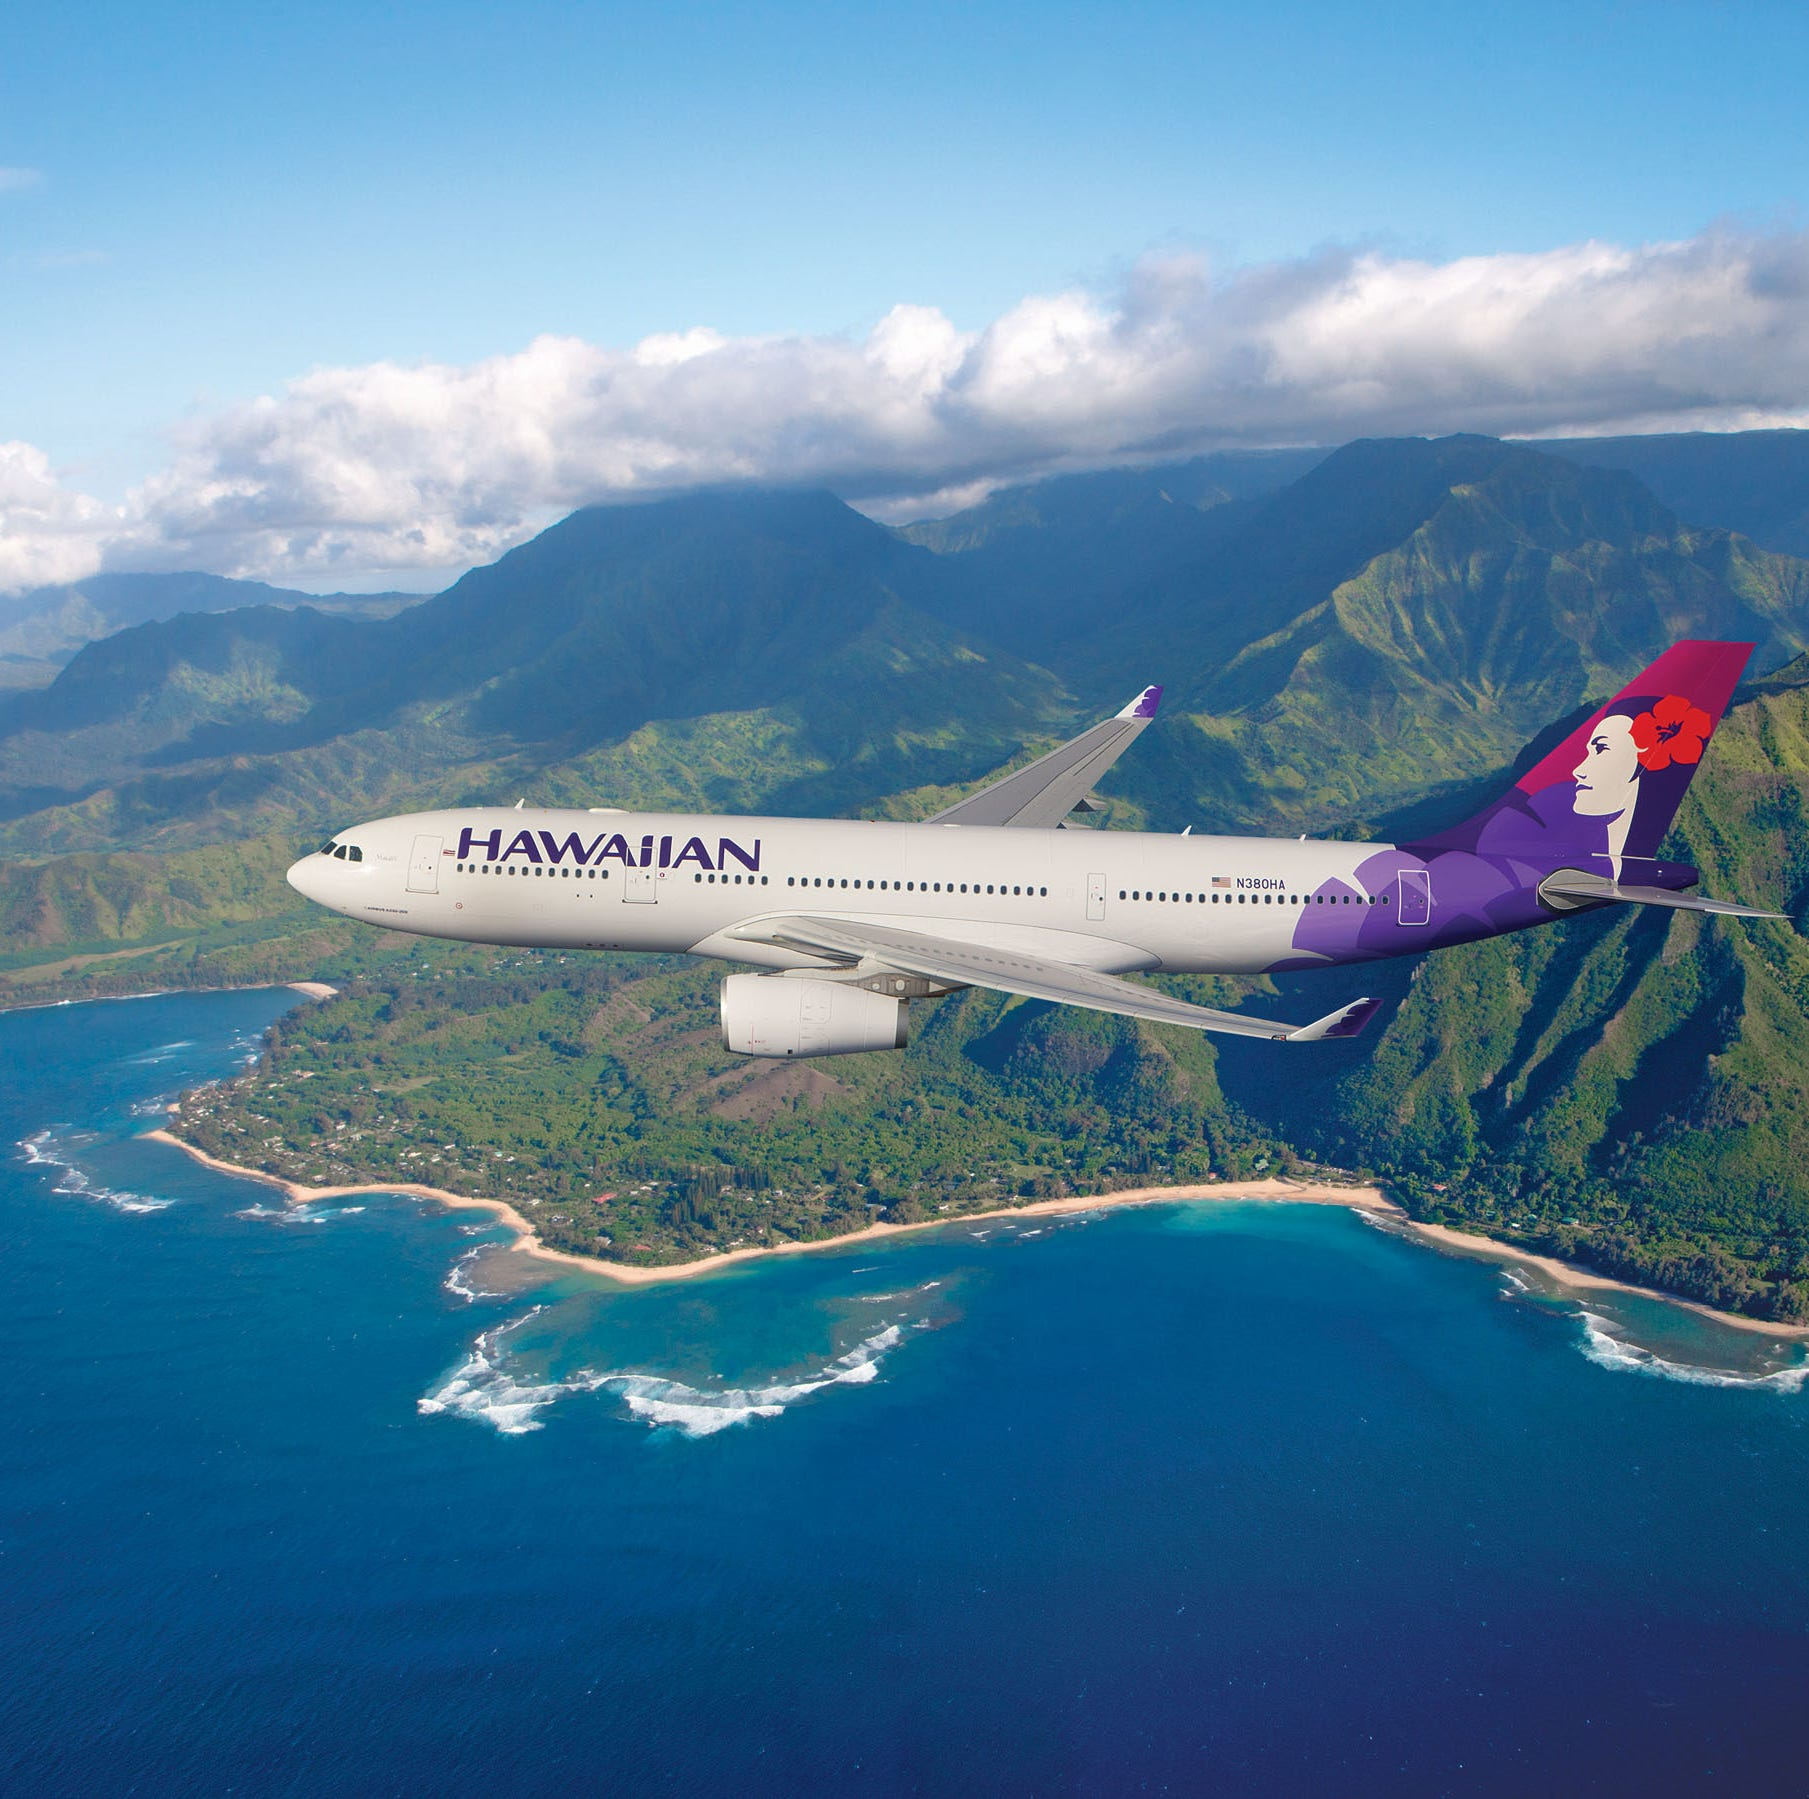 A crew member on a Hawaiian Airlines plane died, forcing the plane to be re-routed Thursday night.